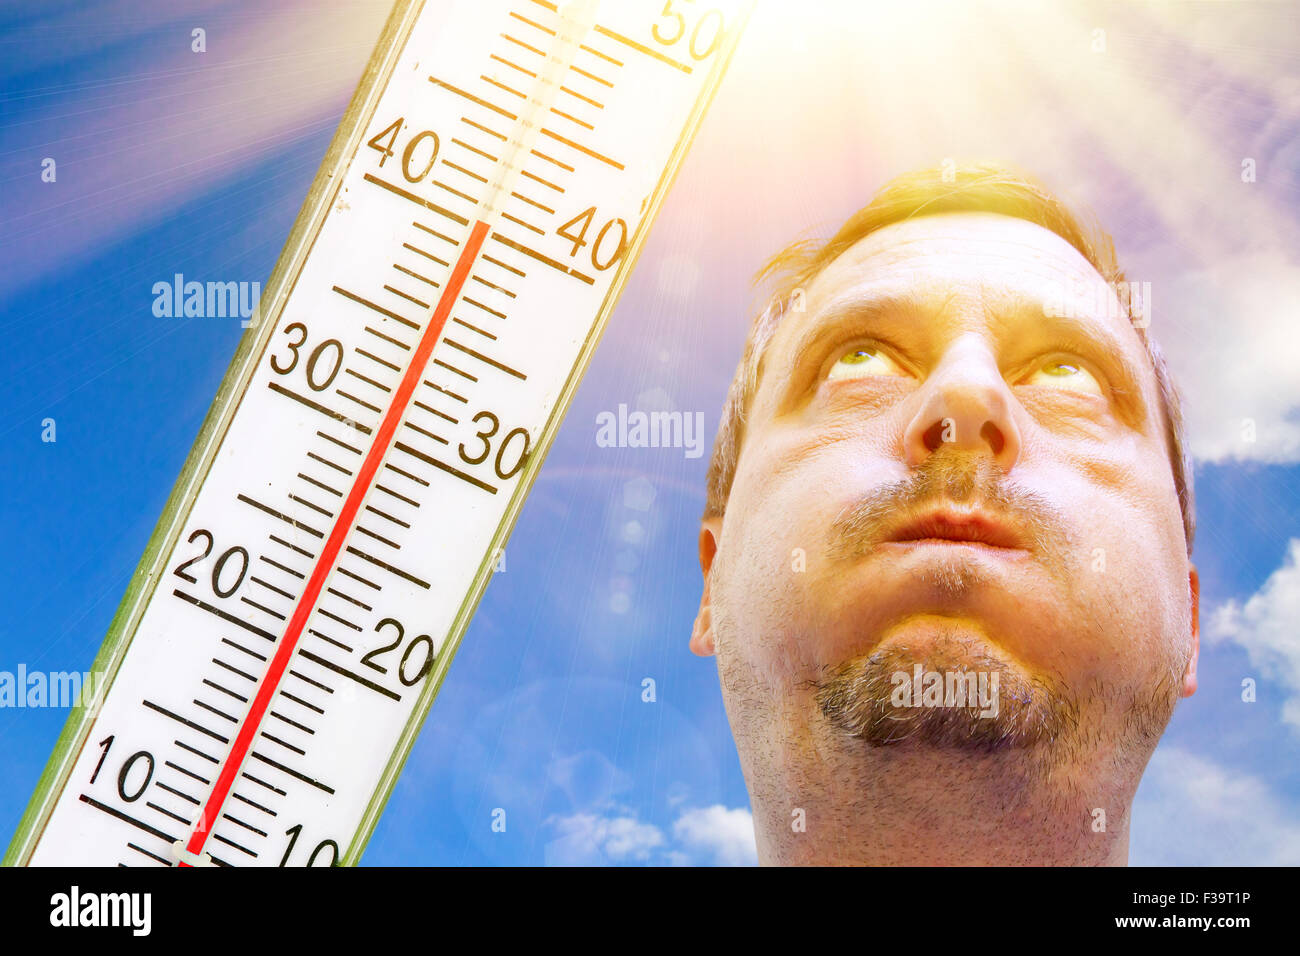 Man on very hot day - Stock Image